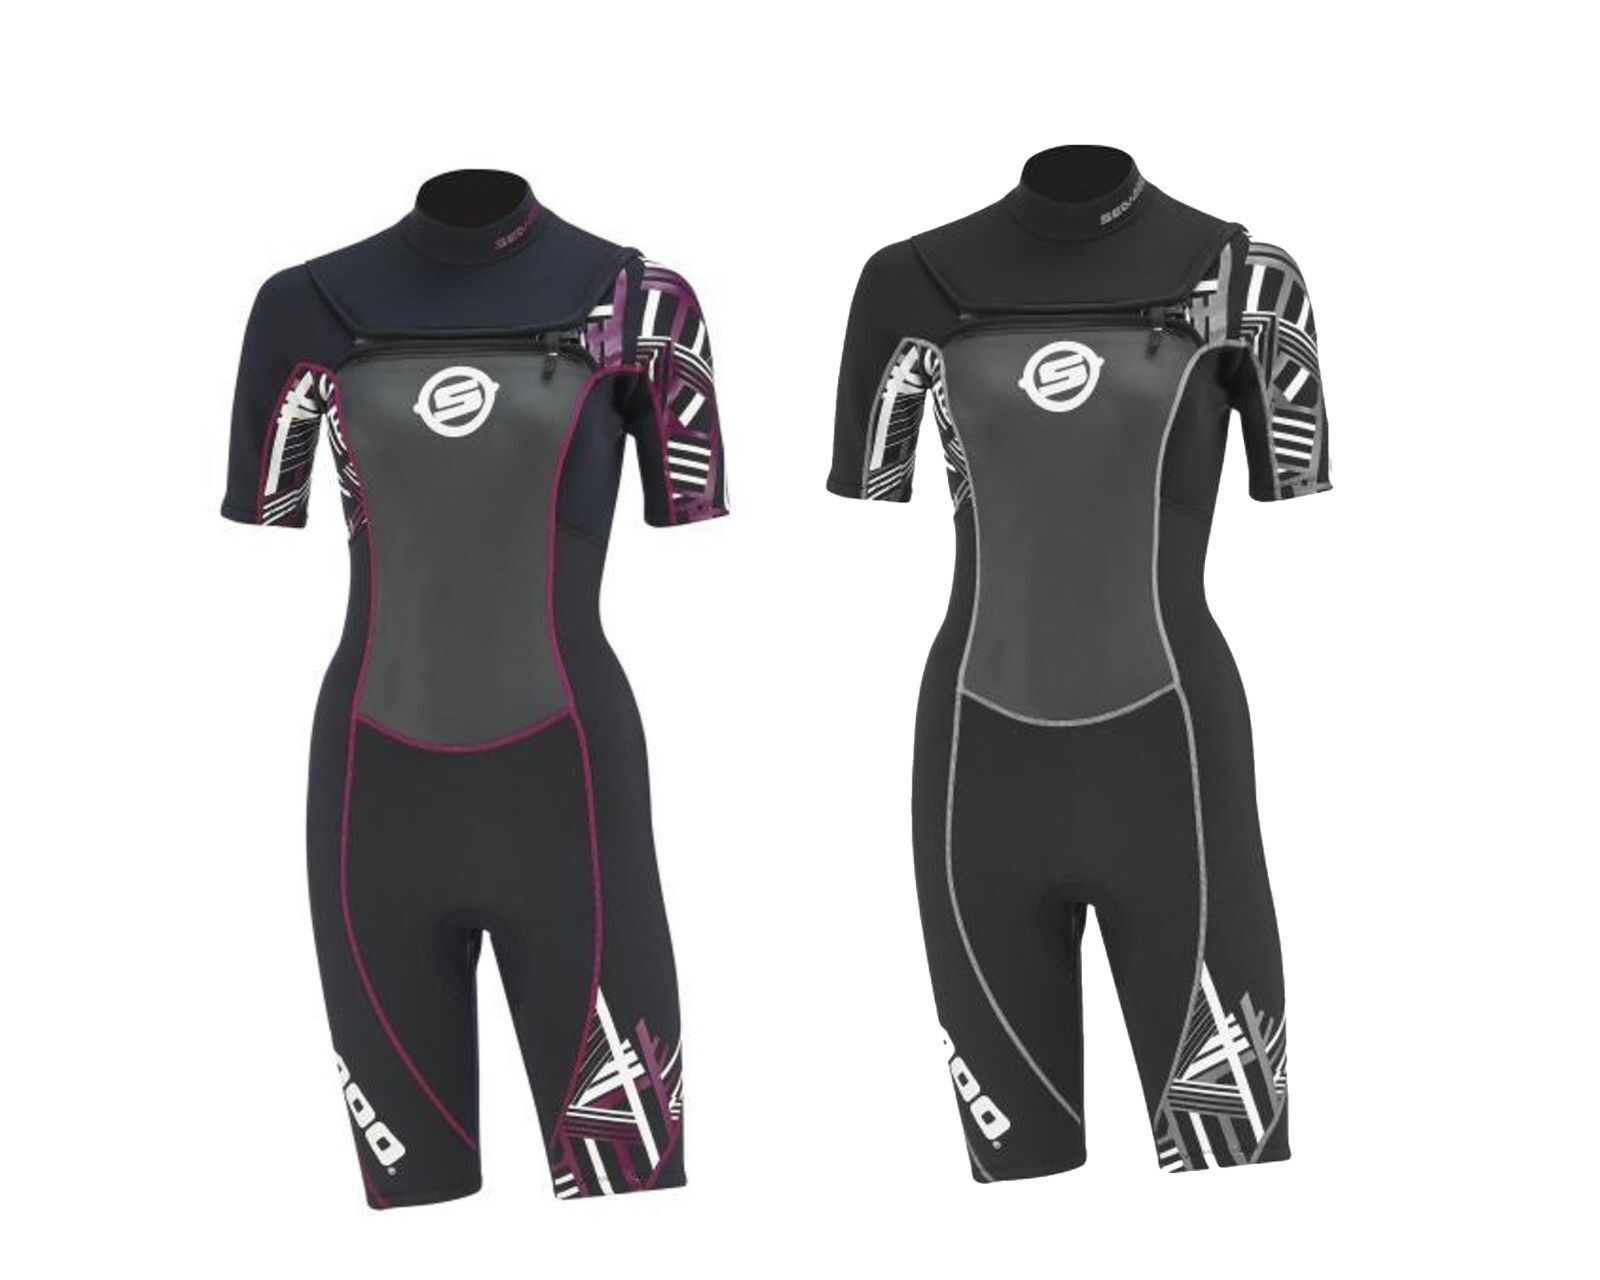 SEADOO WATERCRAFT LADIES VIBE WETSUITS